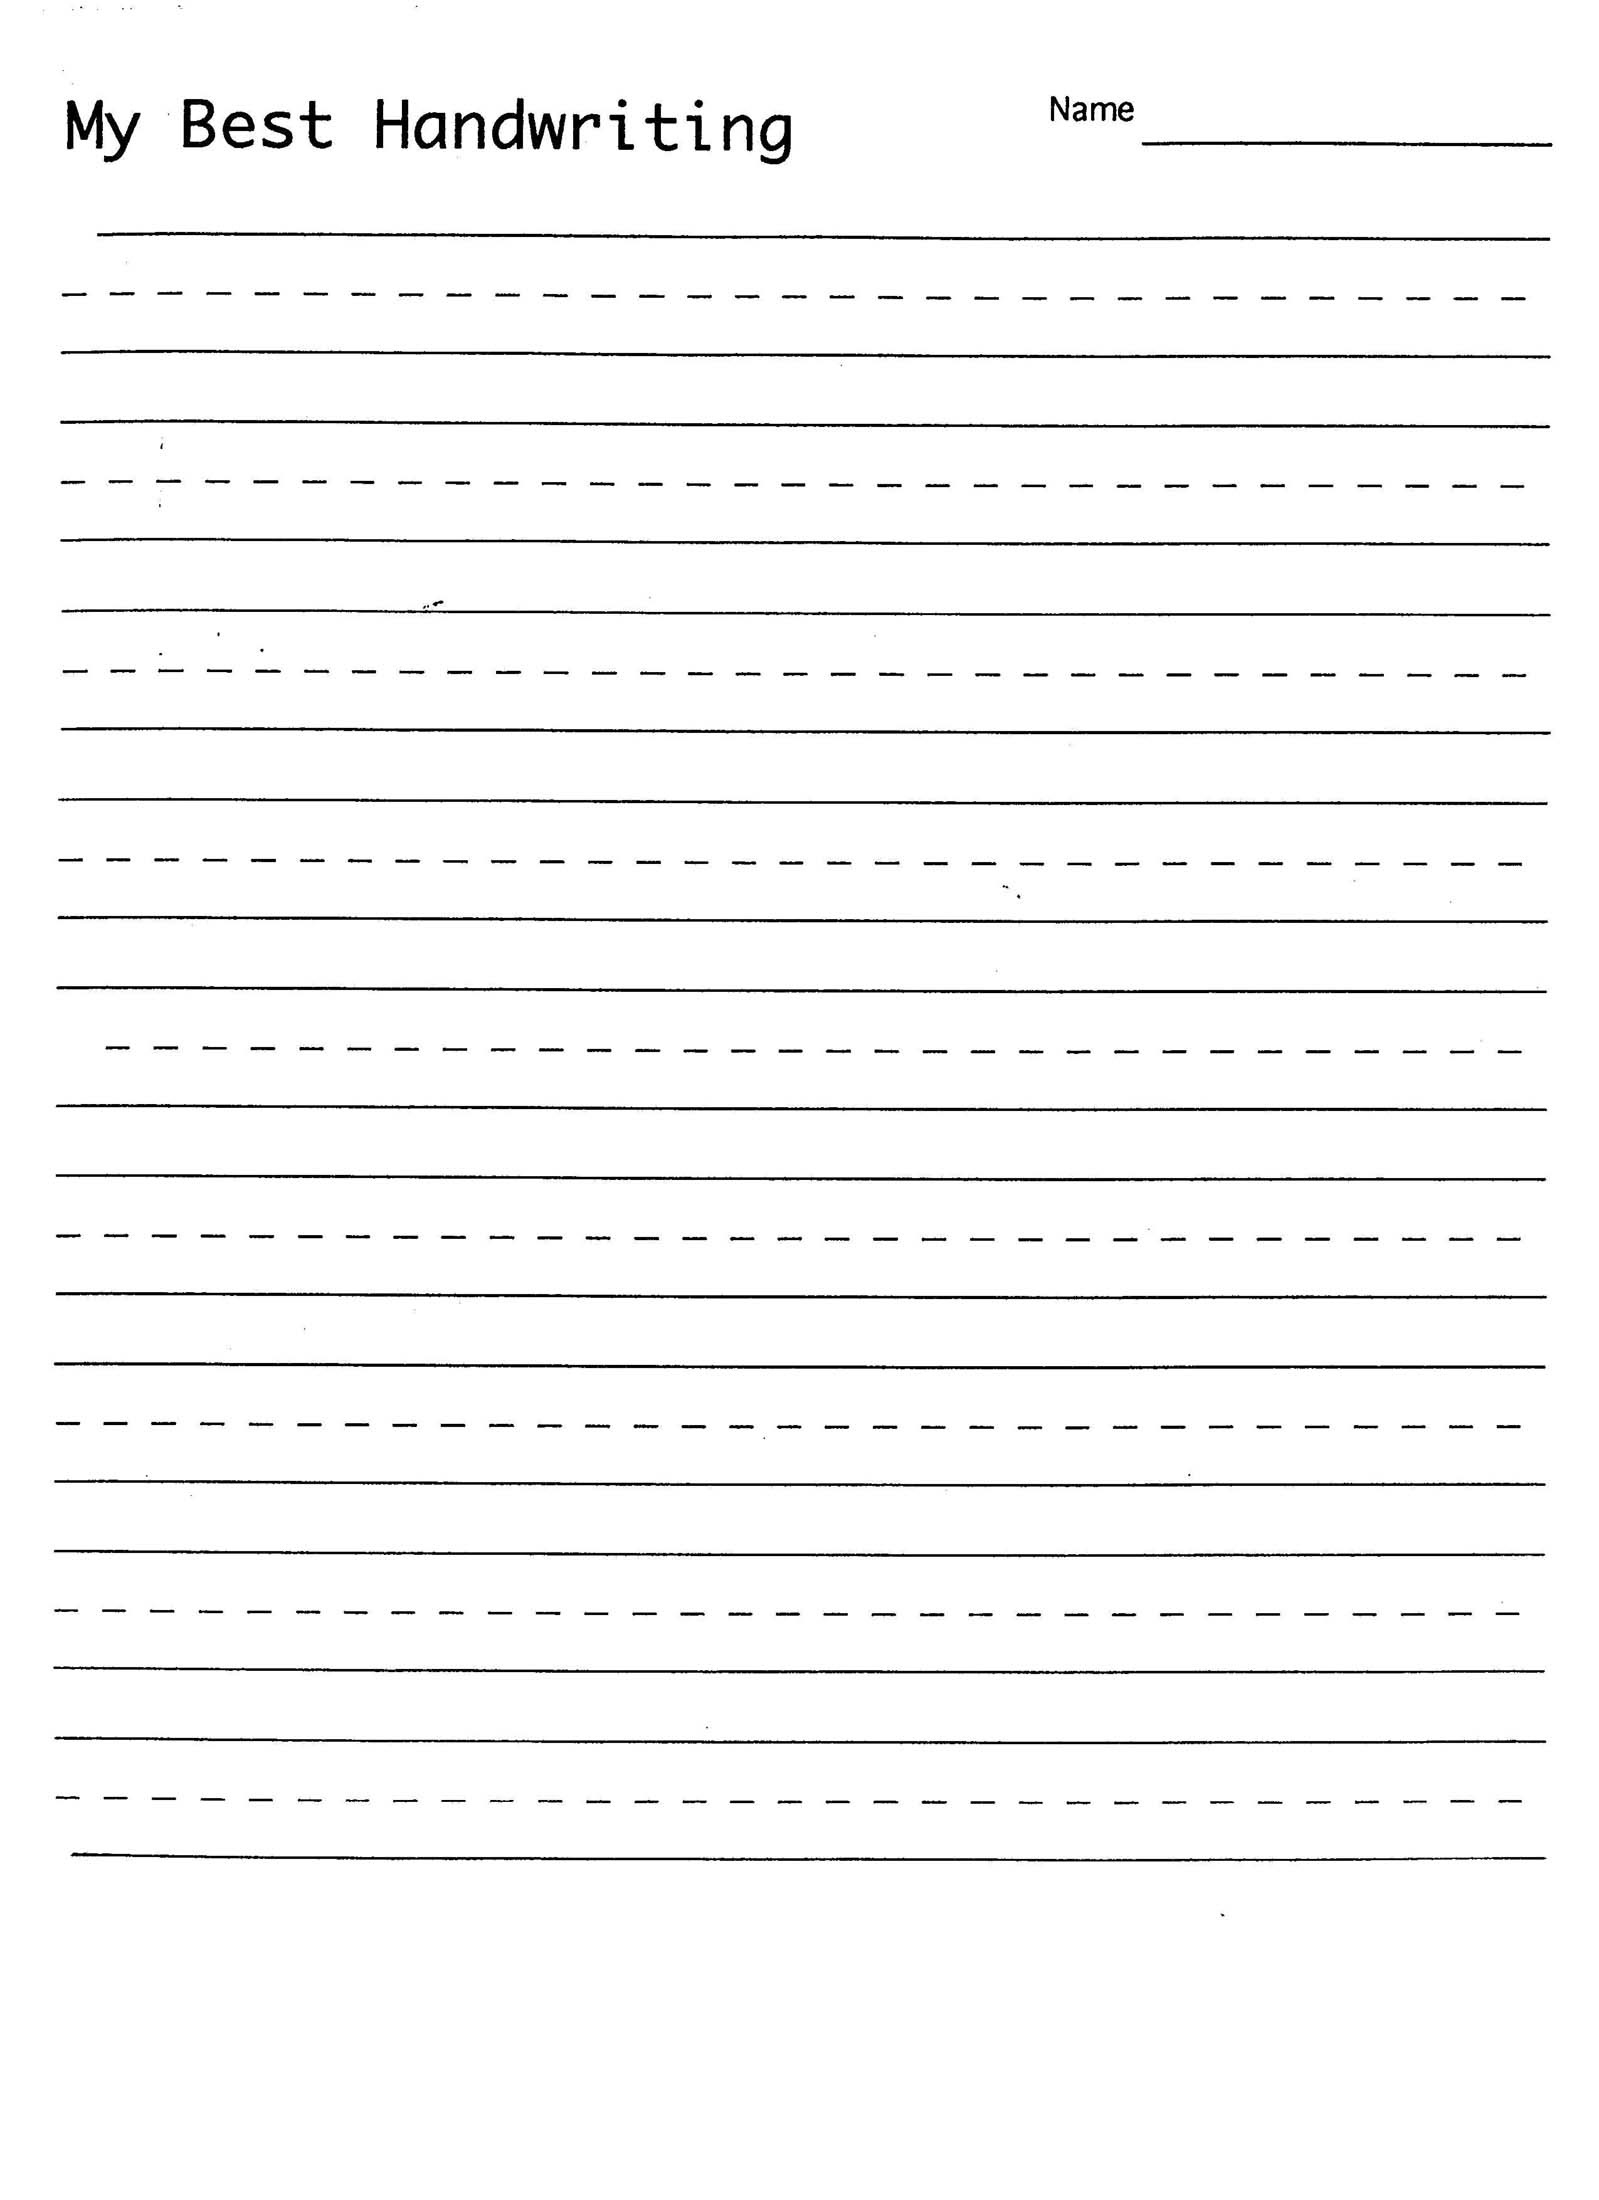 Worksheet Printable Handwriting Worksheets best printable handwriting sheets activity shelter printable